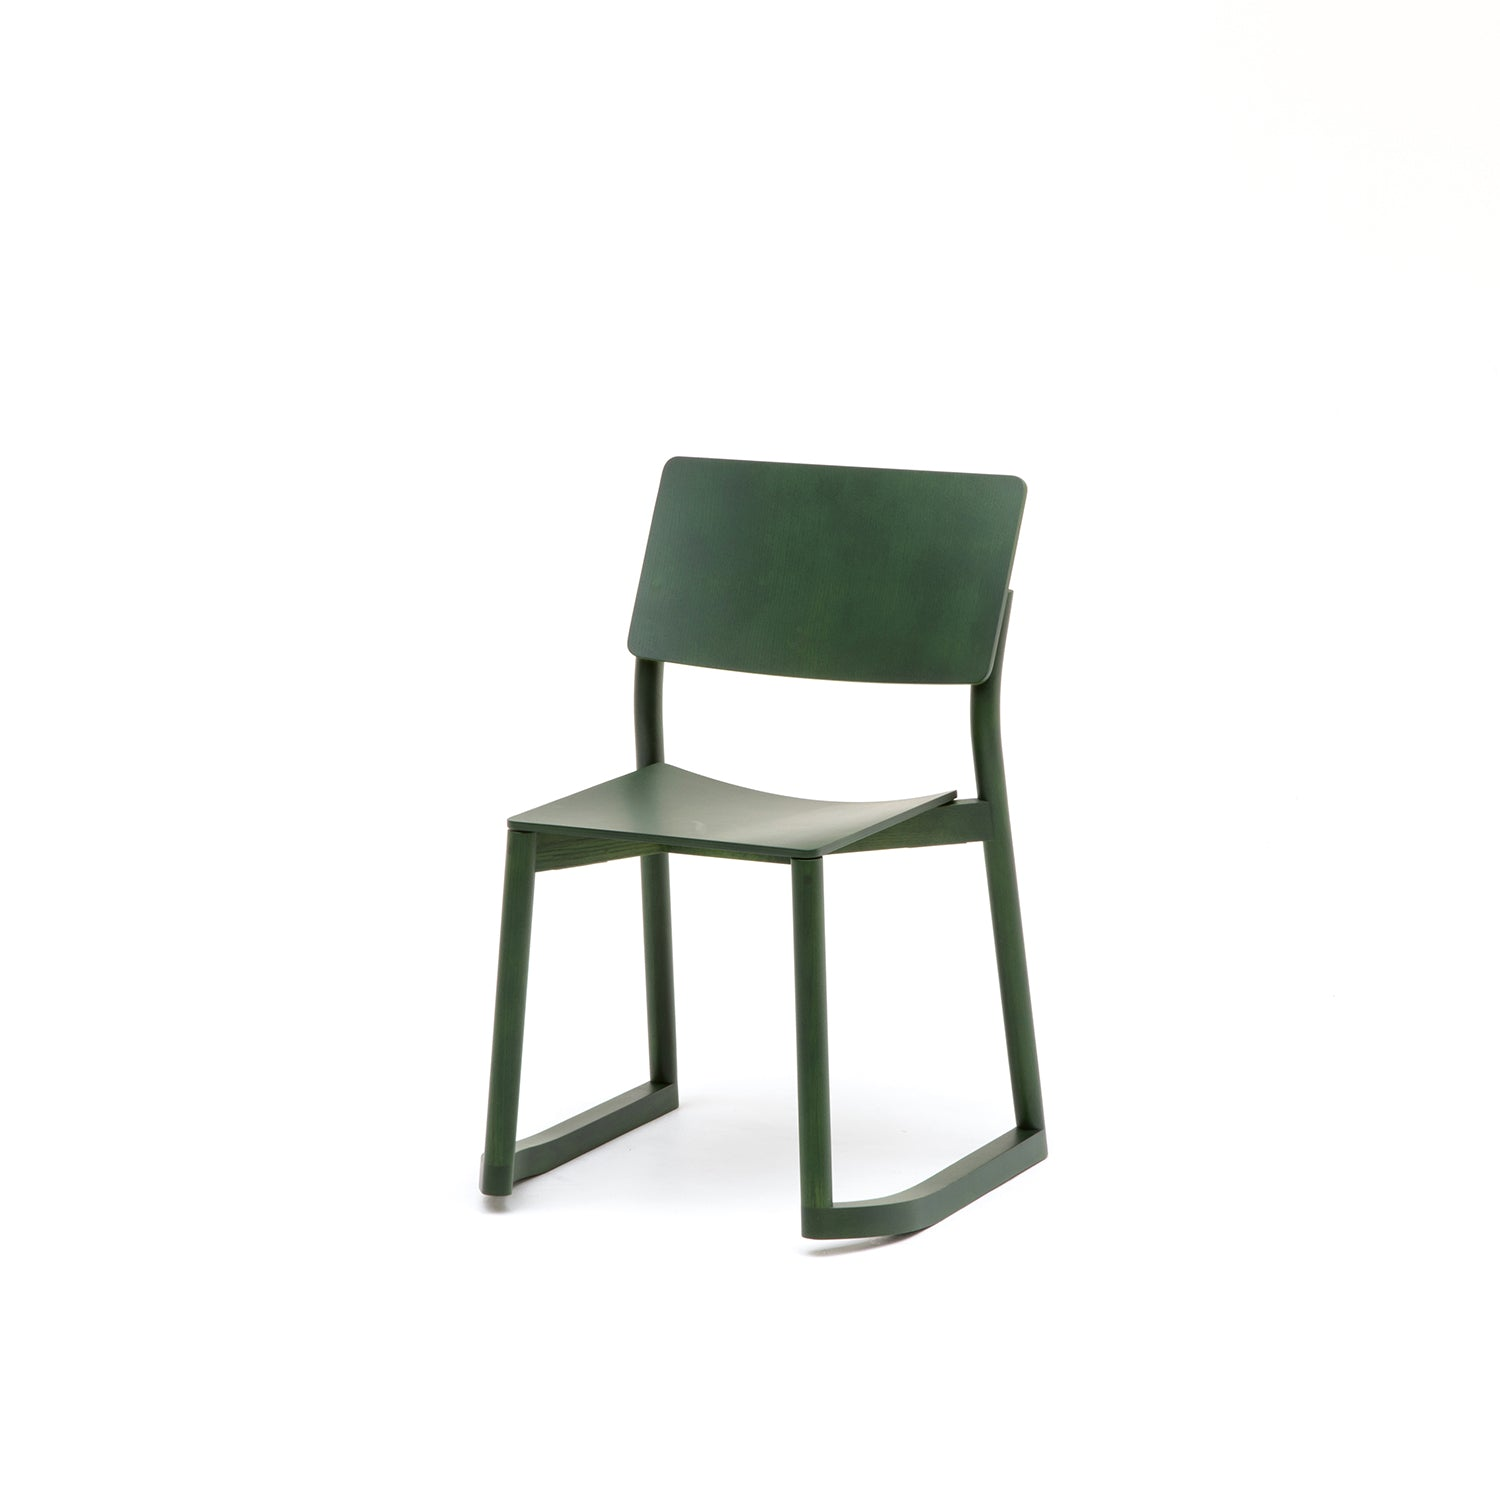 Panorama Chair With Runners: Moss Green Oak